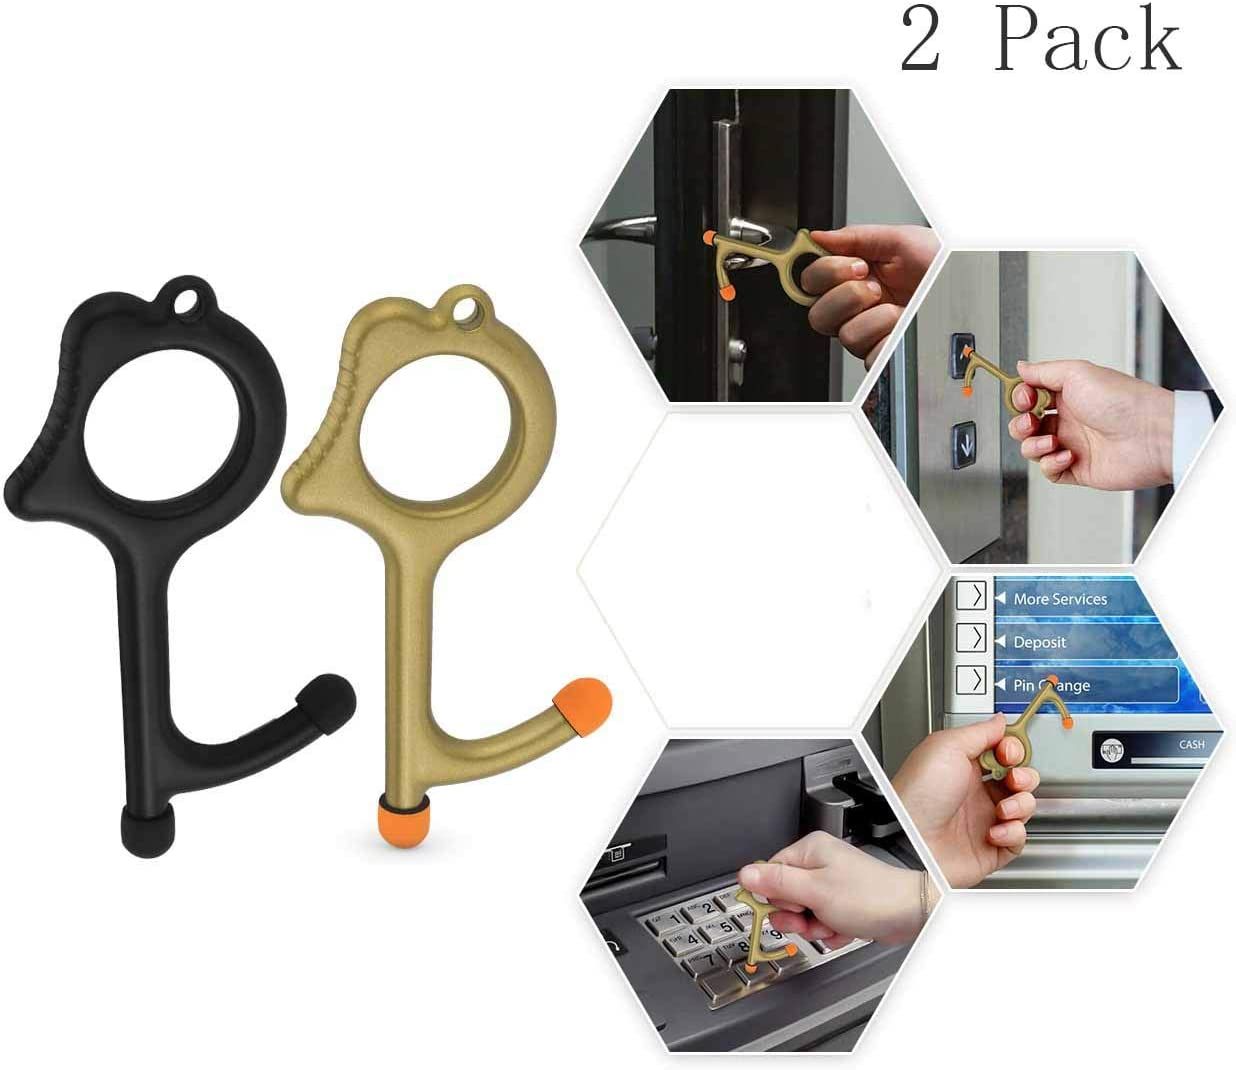 No Touch Tool Handheld EDC Keychain Tool –Closer Contactless Safety Door Opener Smart Key Tool for Infected Surfaces, Touchscreens, Handles, Buttons (Black +Gold 2Pack)